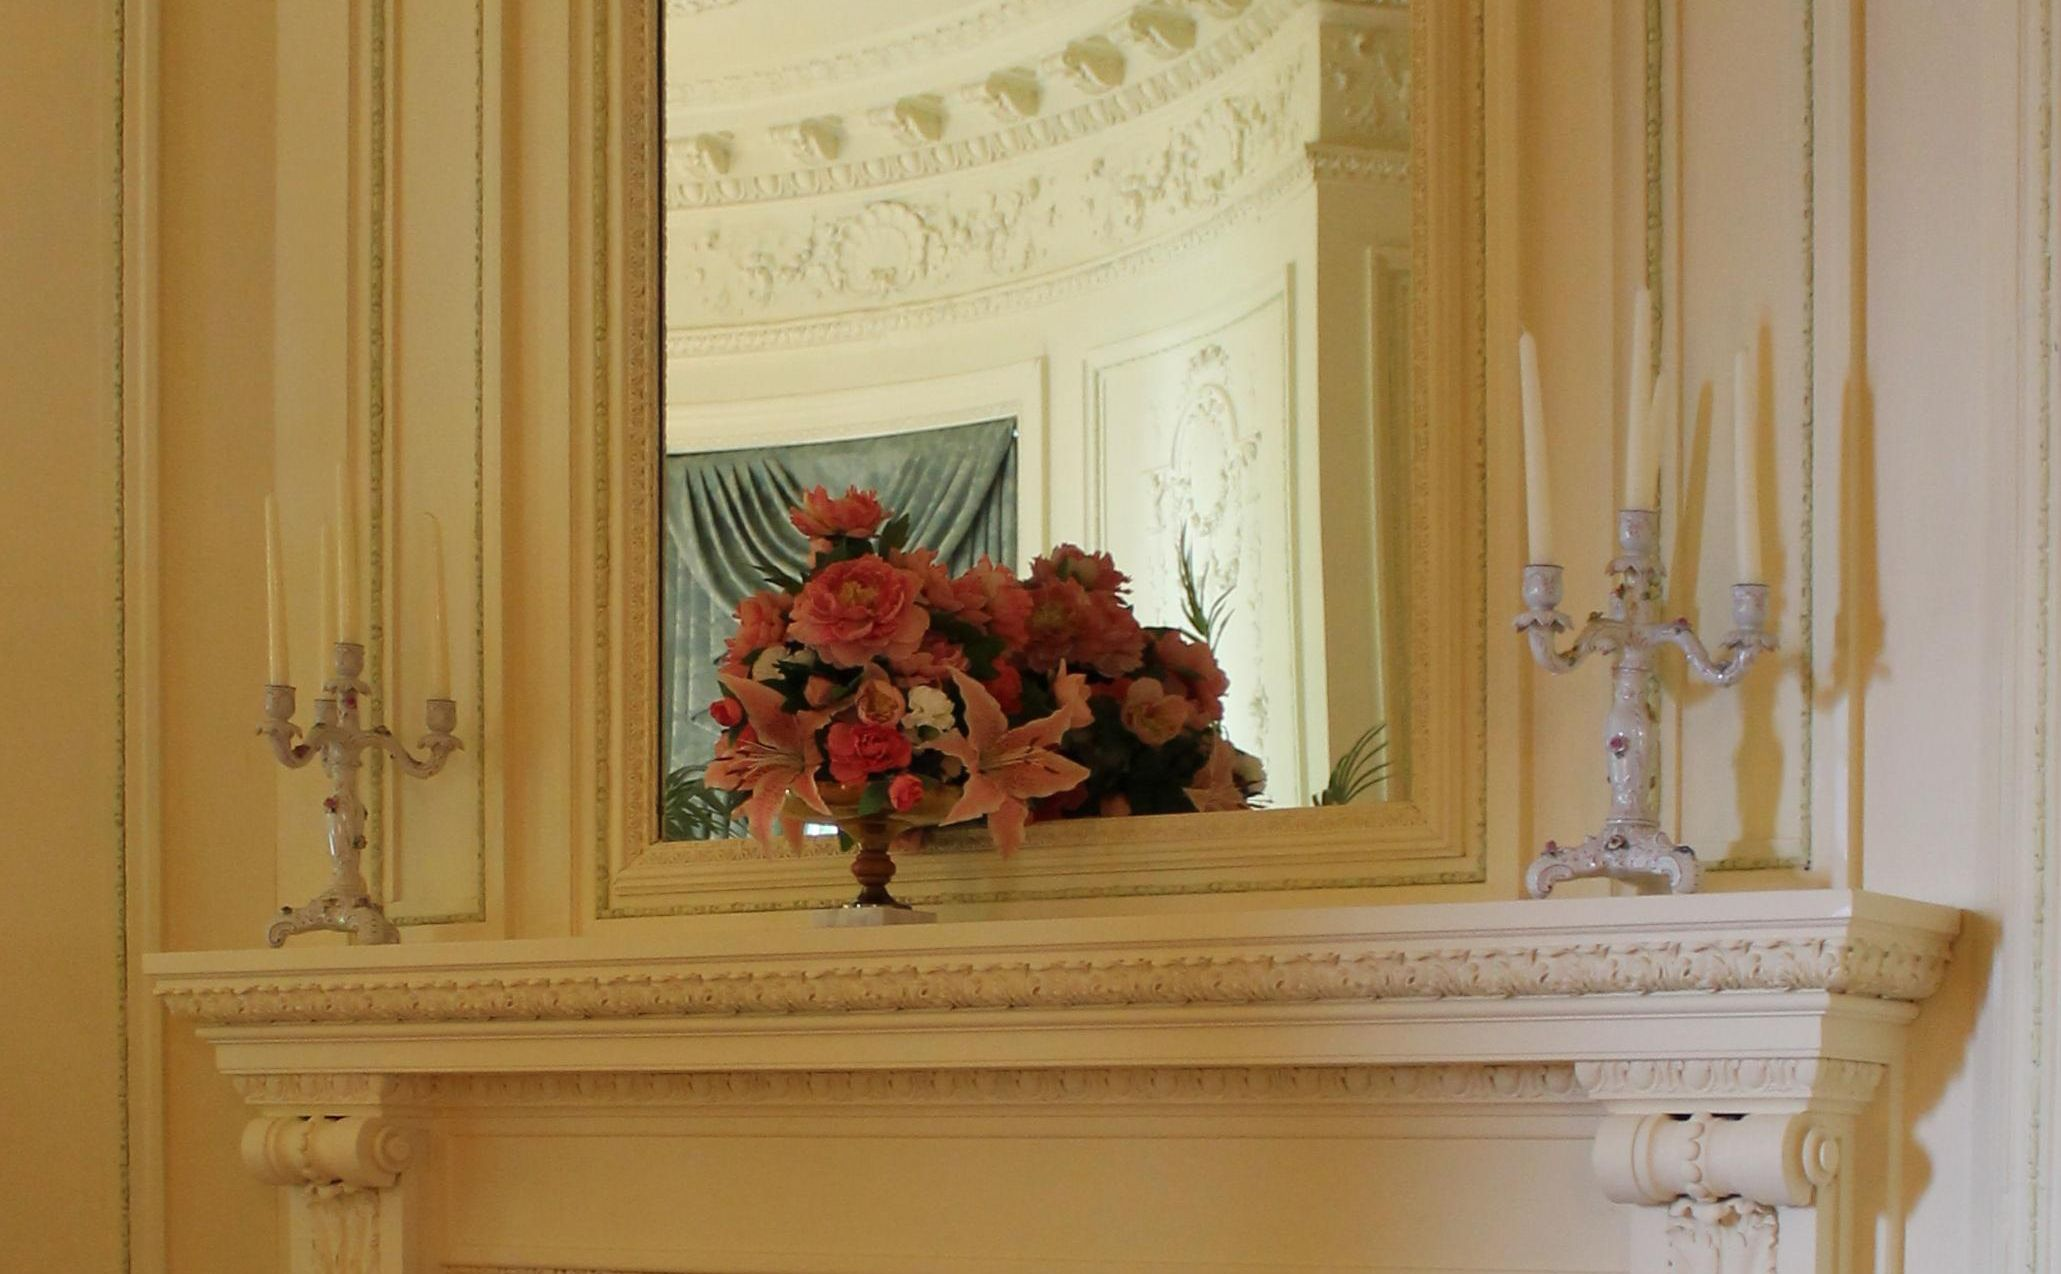 How to make a Christmas bouquet for your mantelpiece